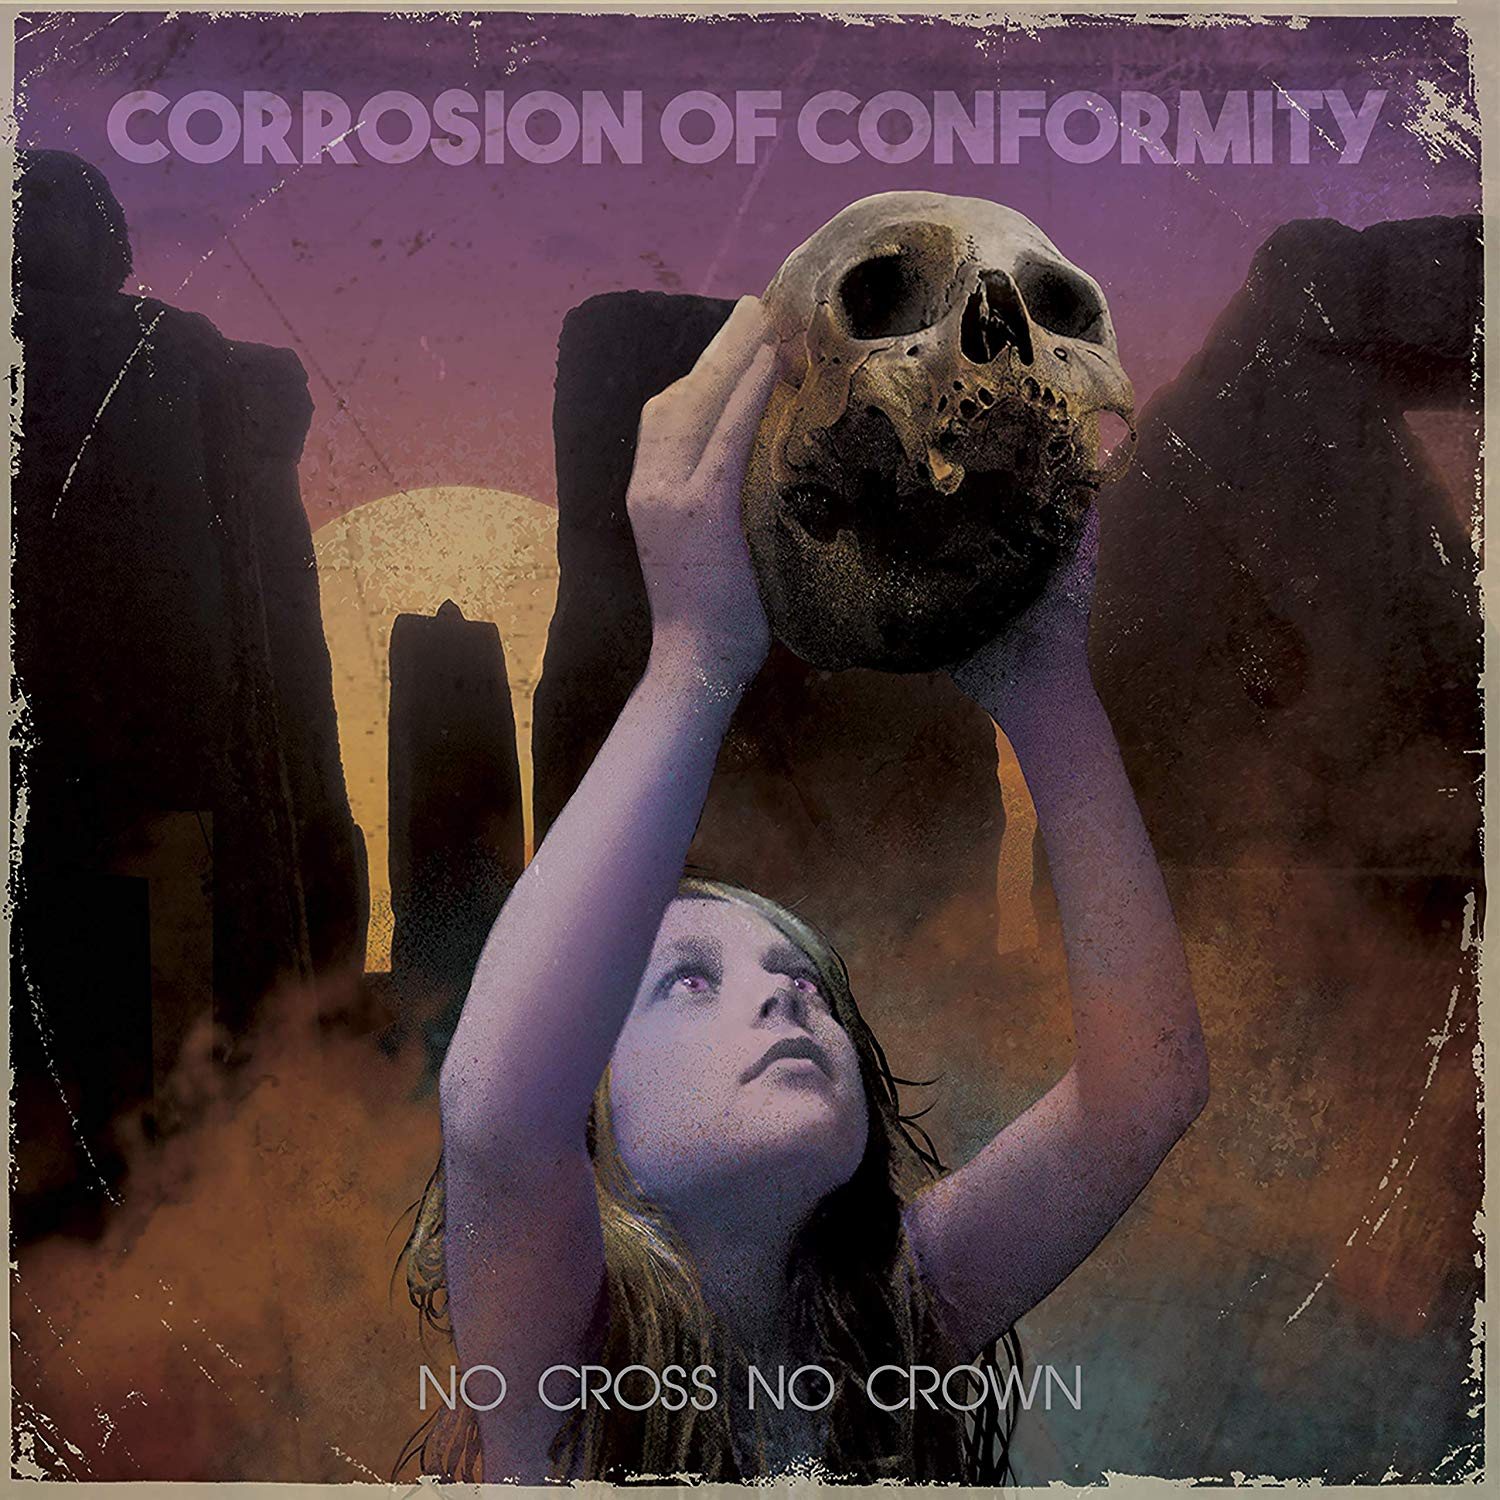 Corrosion Of Conformity - No Cross No Crown [LP]